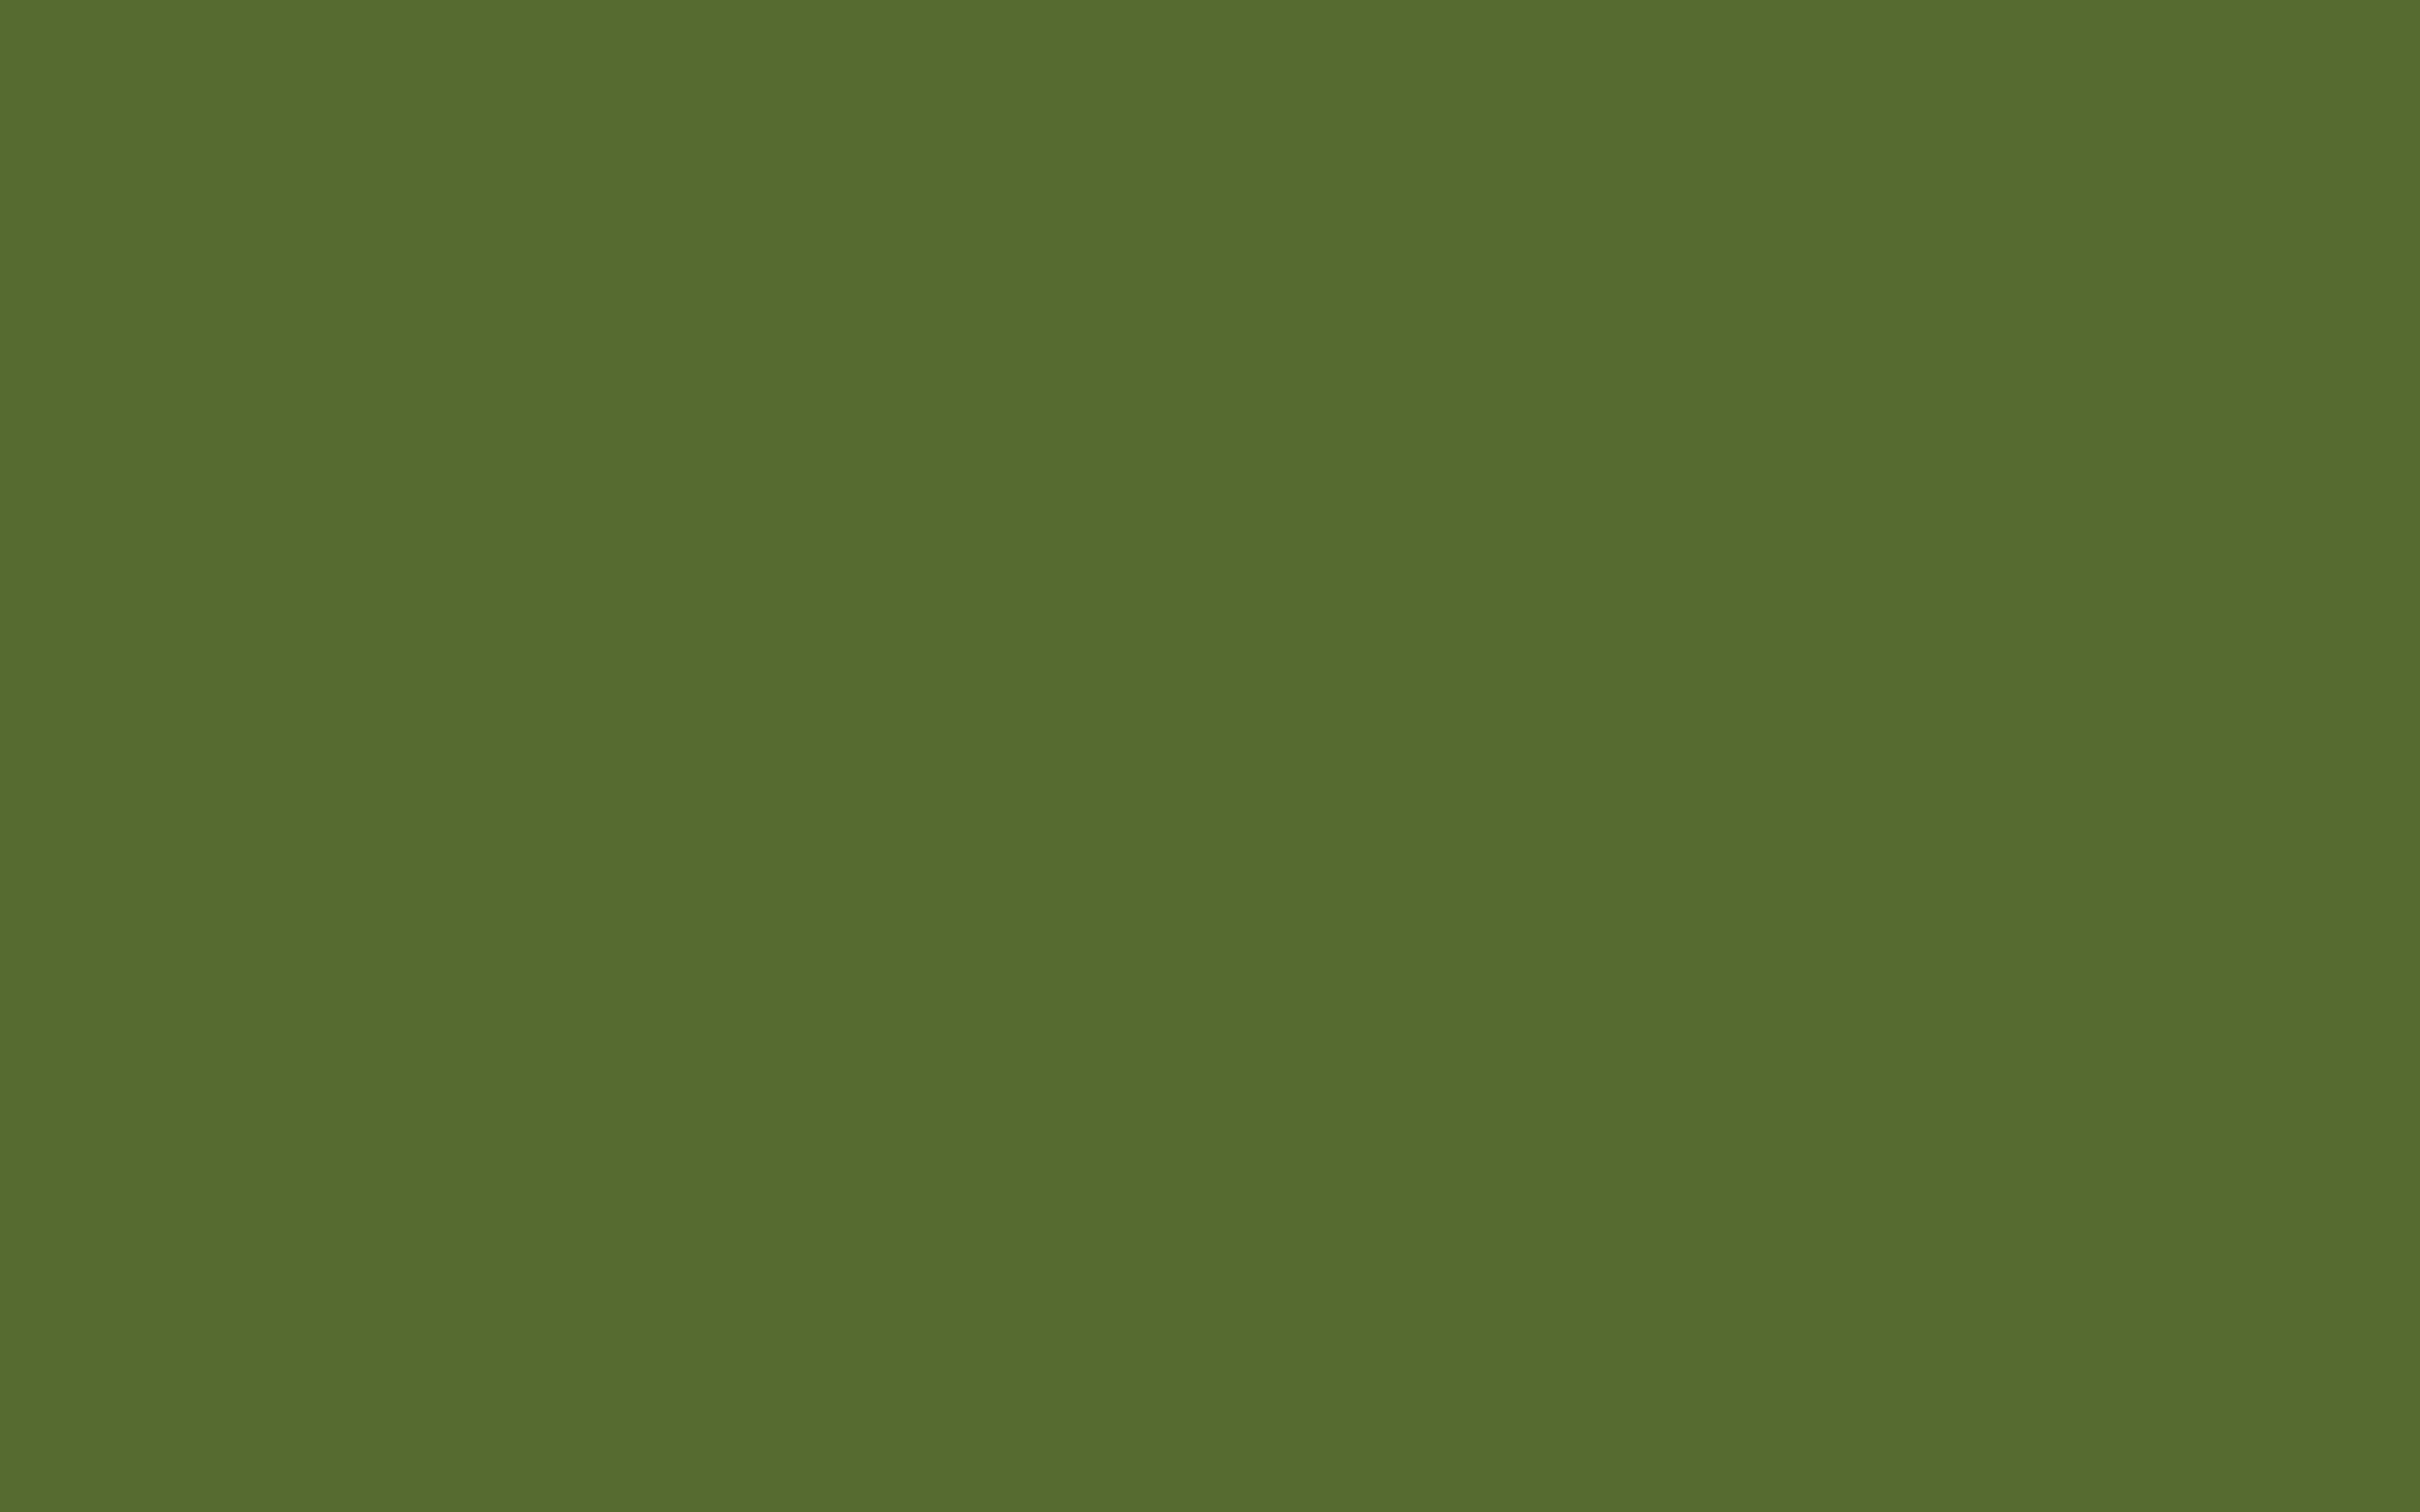 Olive Green Card Stock Paper Texture Picture | Free